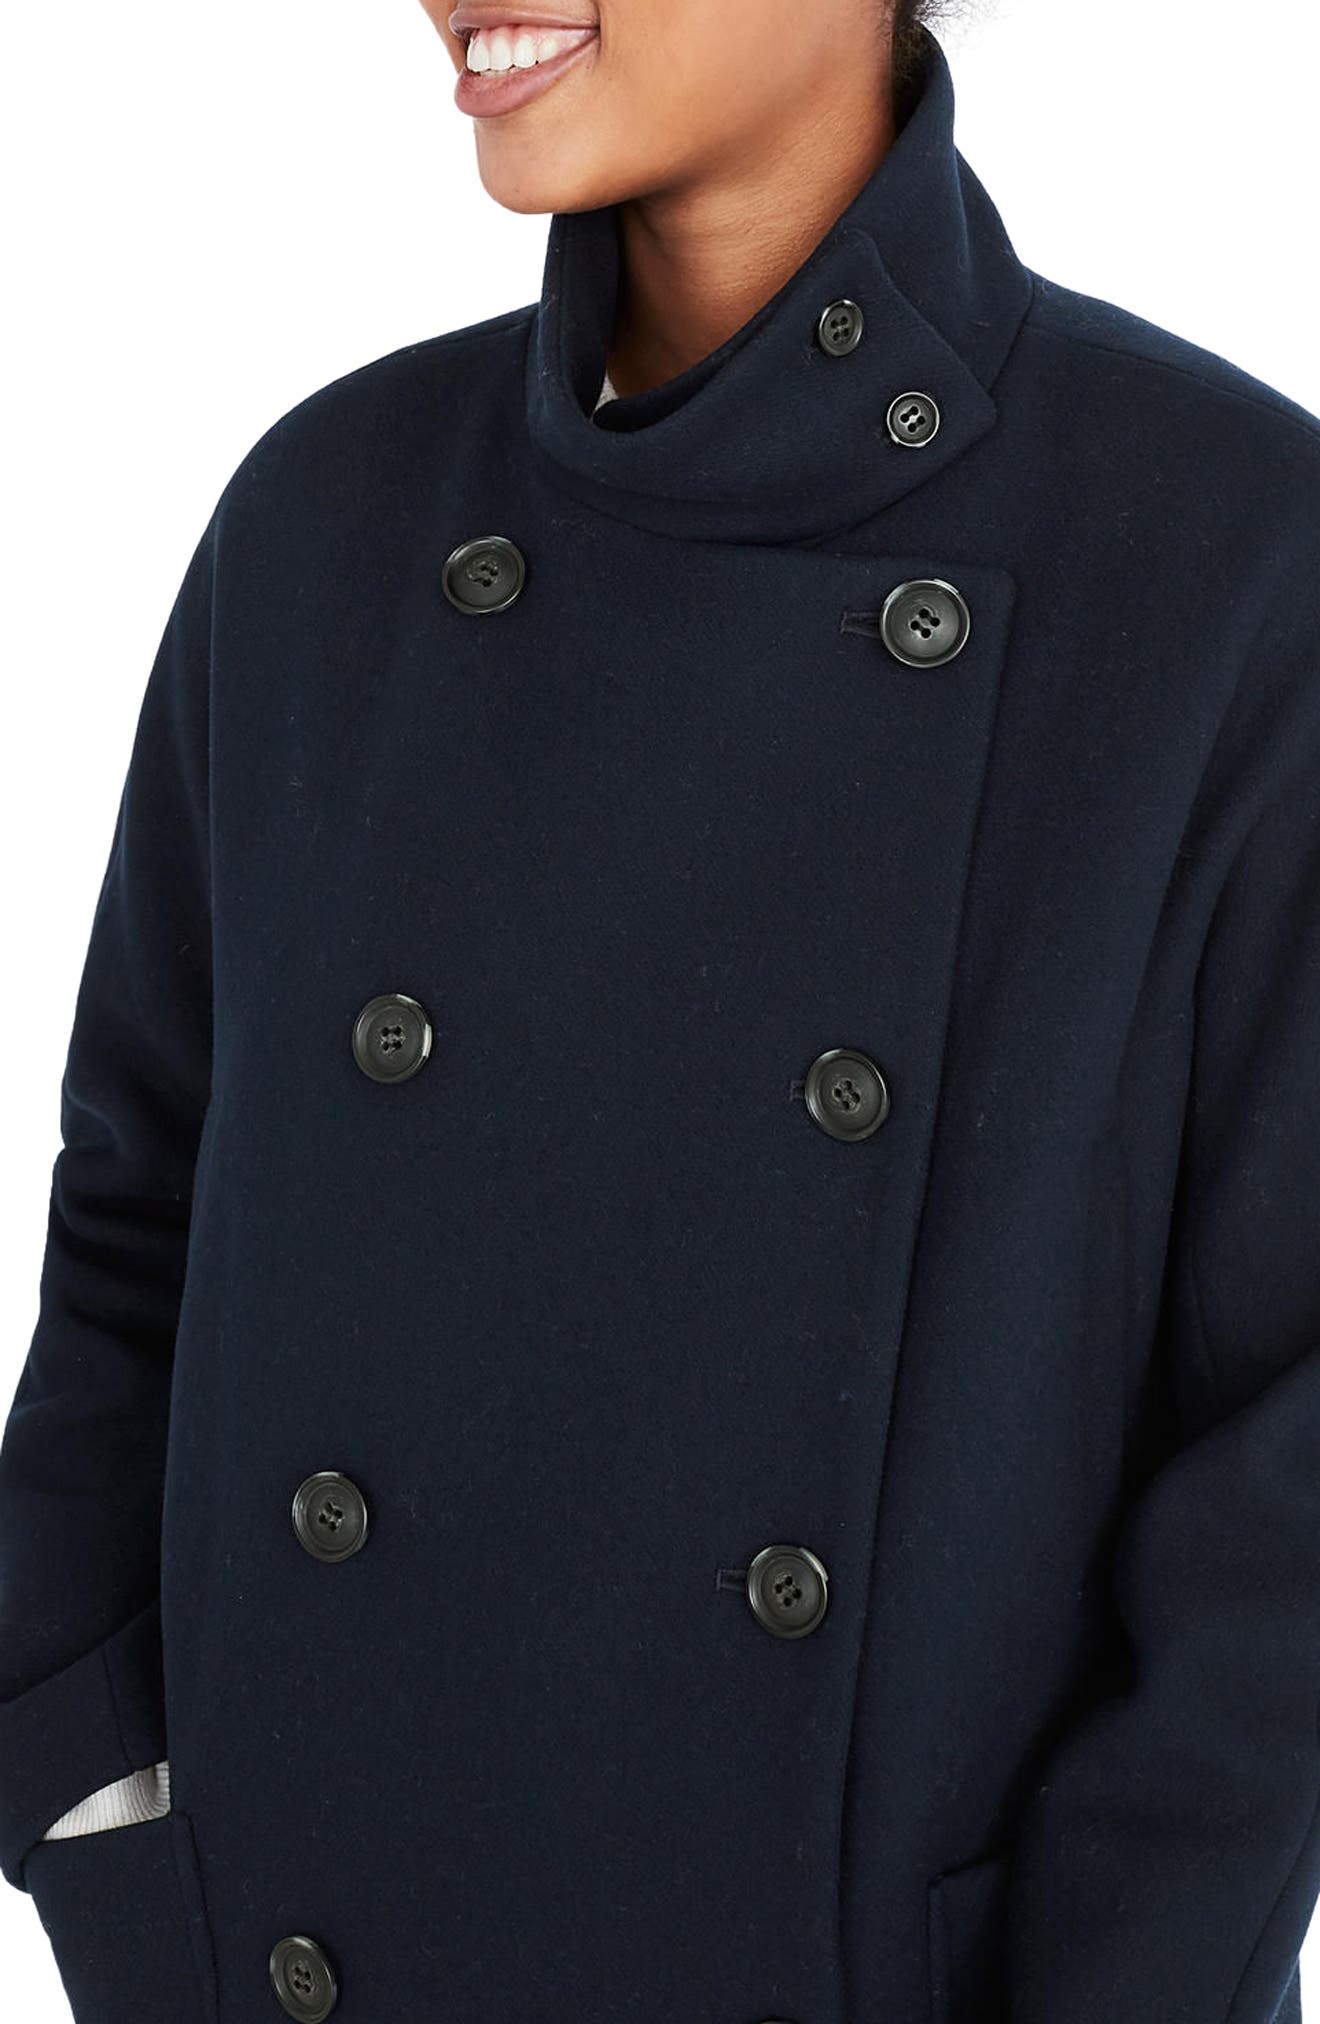 City Grid Double Breasted Coat,                             Alternate thumbnail 4, color,                             Iconic Indigo